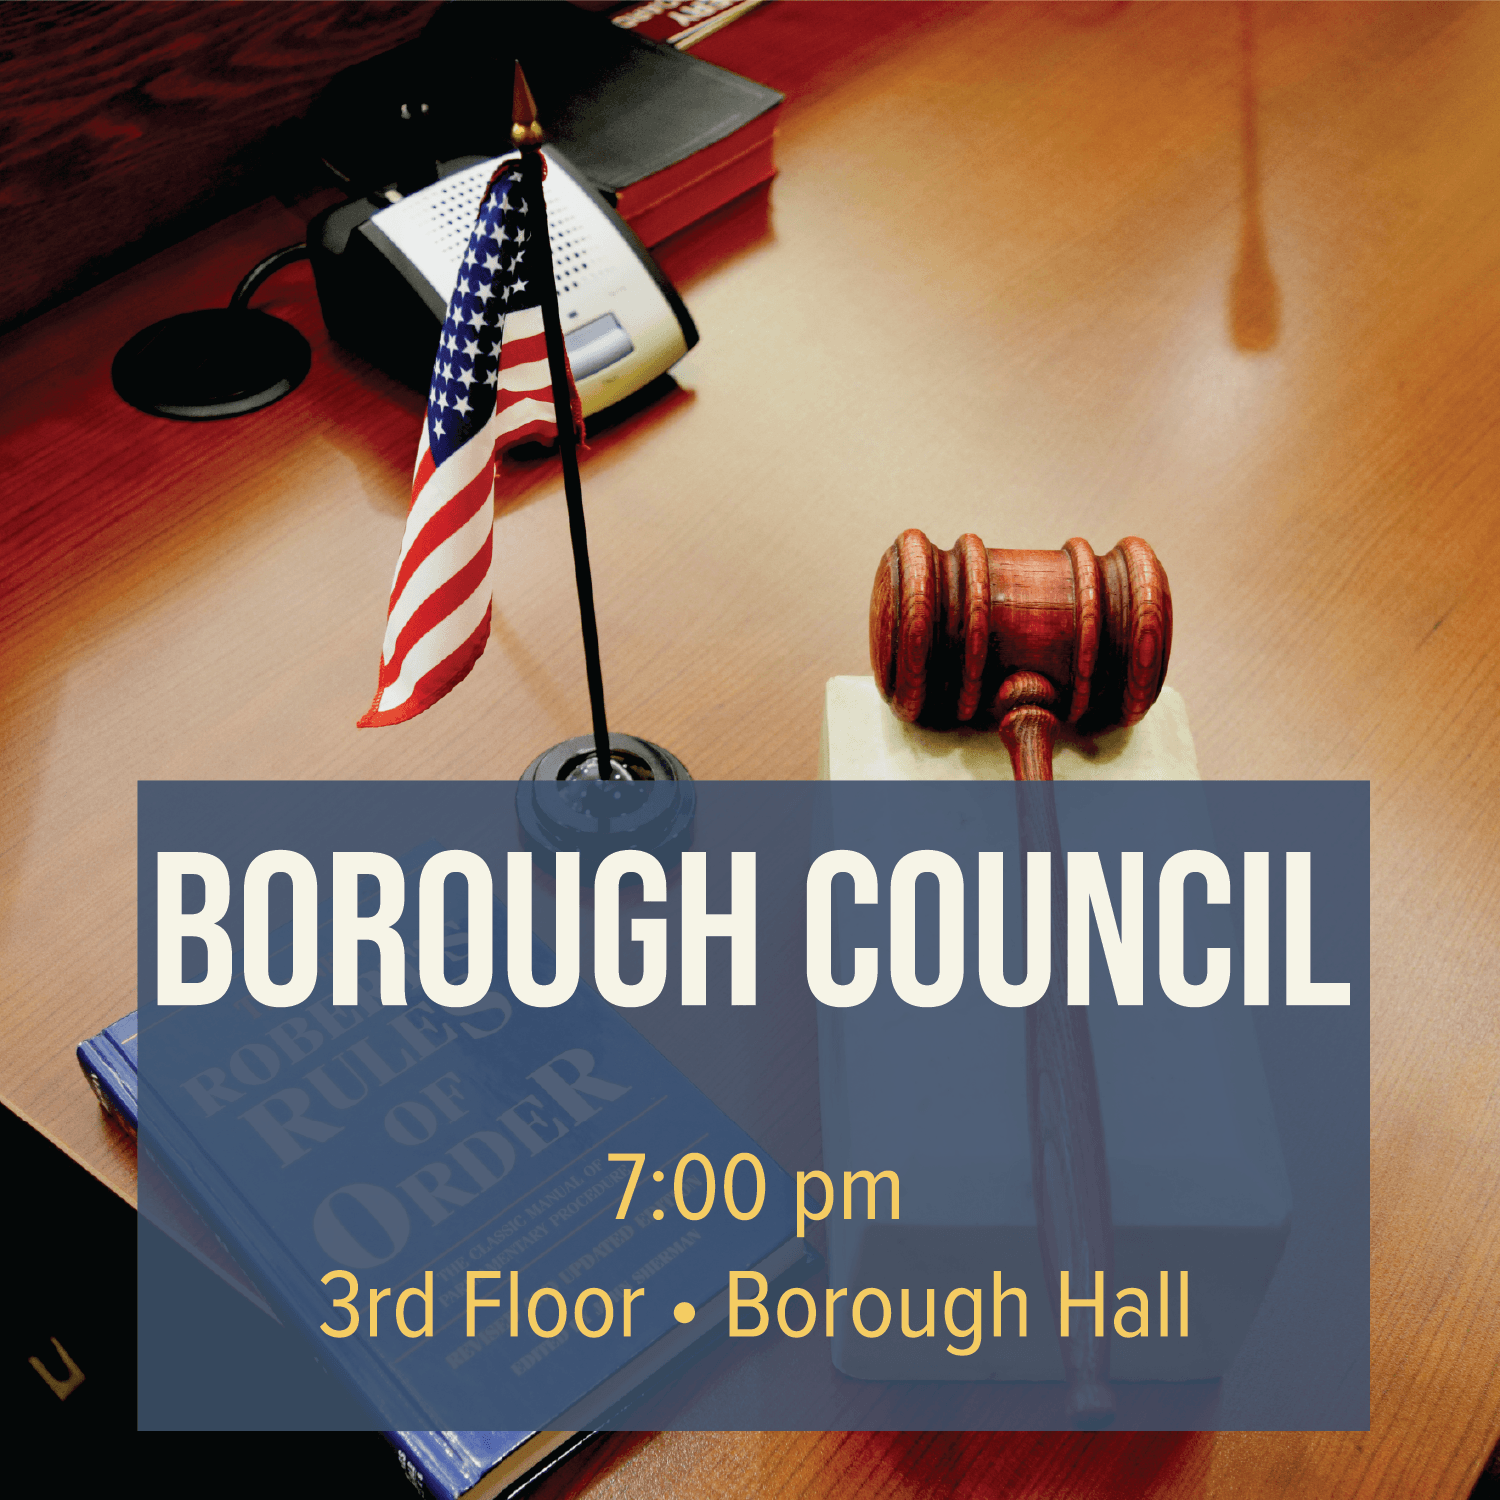 Borough Council Meeting